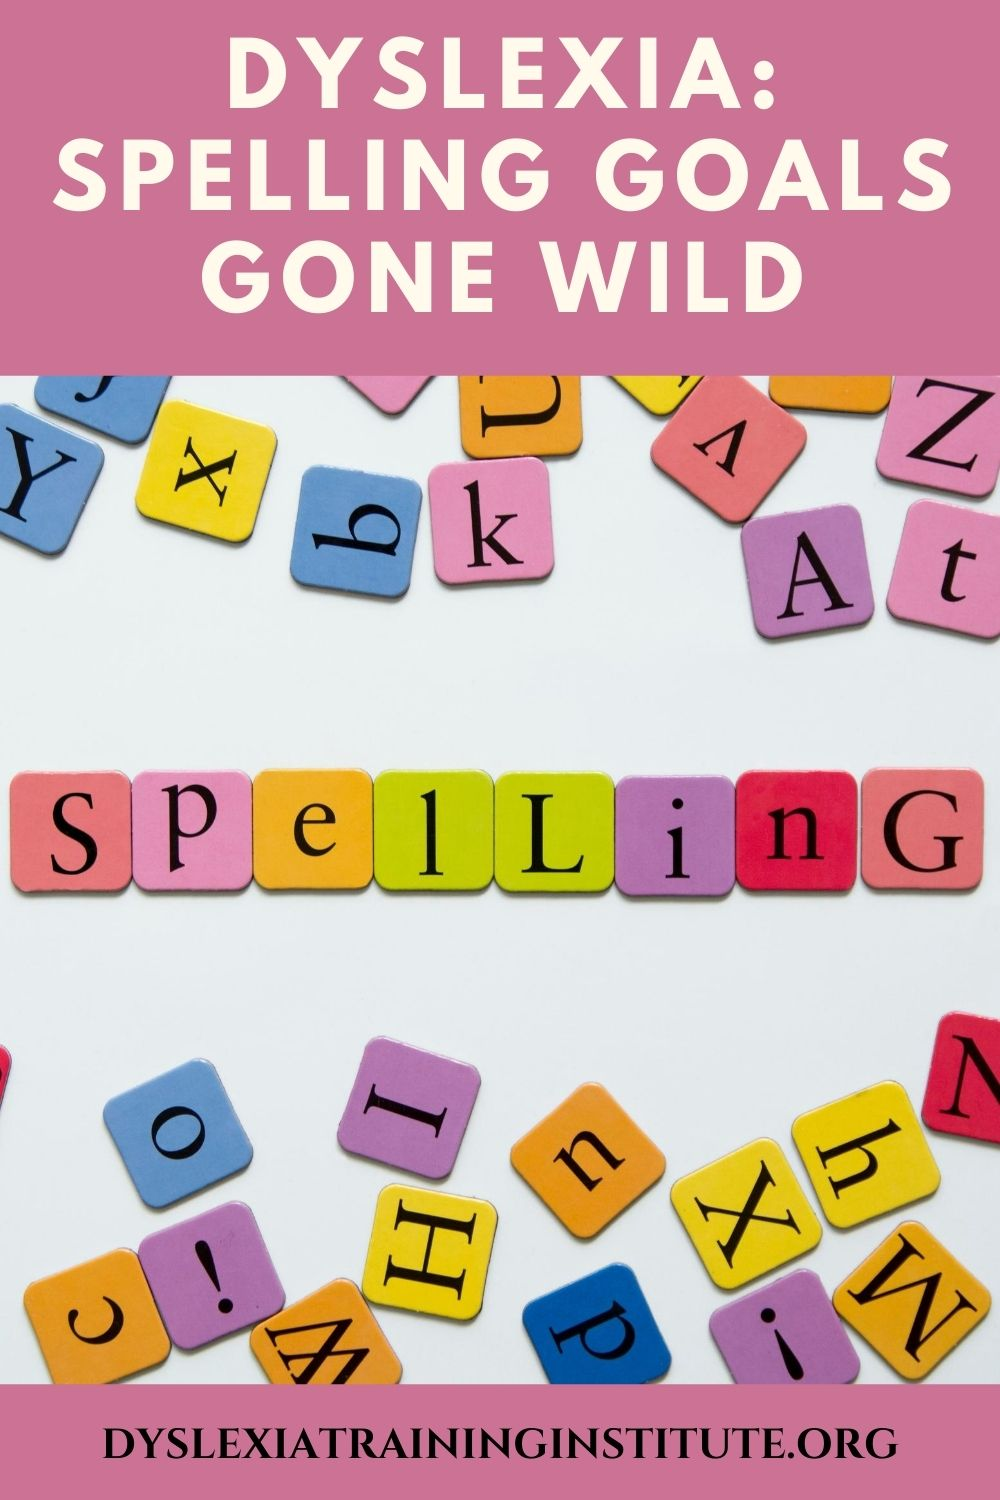 Dyslexia and spelling goals: Are your IEP spelling goals all they should be?